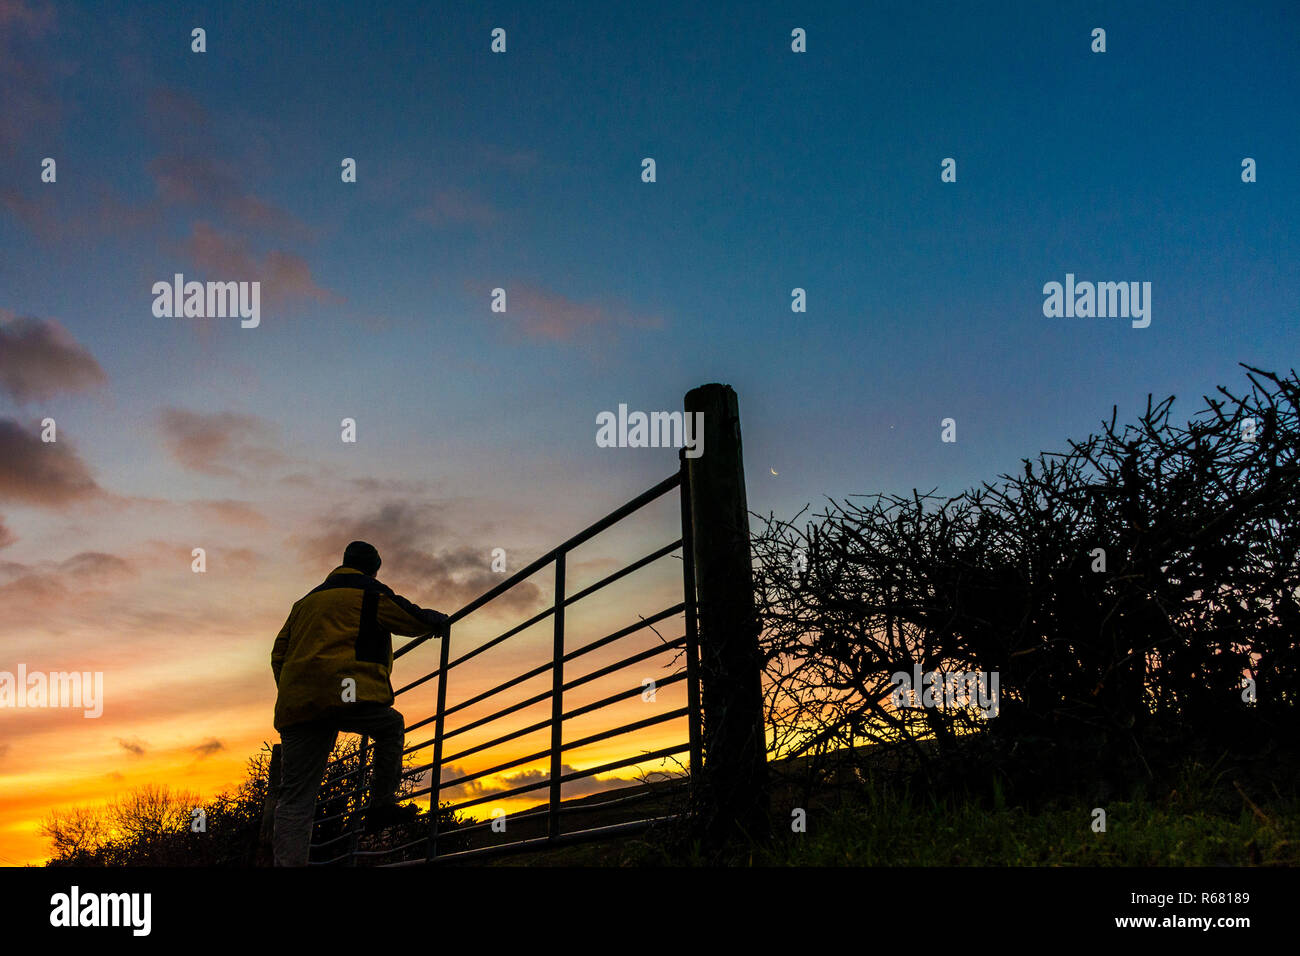 Ardara, County Donegal, Ireland. 4th December 2018. Sunrise on a cold winter's morning after overnight rainfall. Credit: Richard Wayman/Alamy Live News - Stock Image